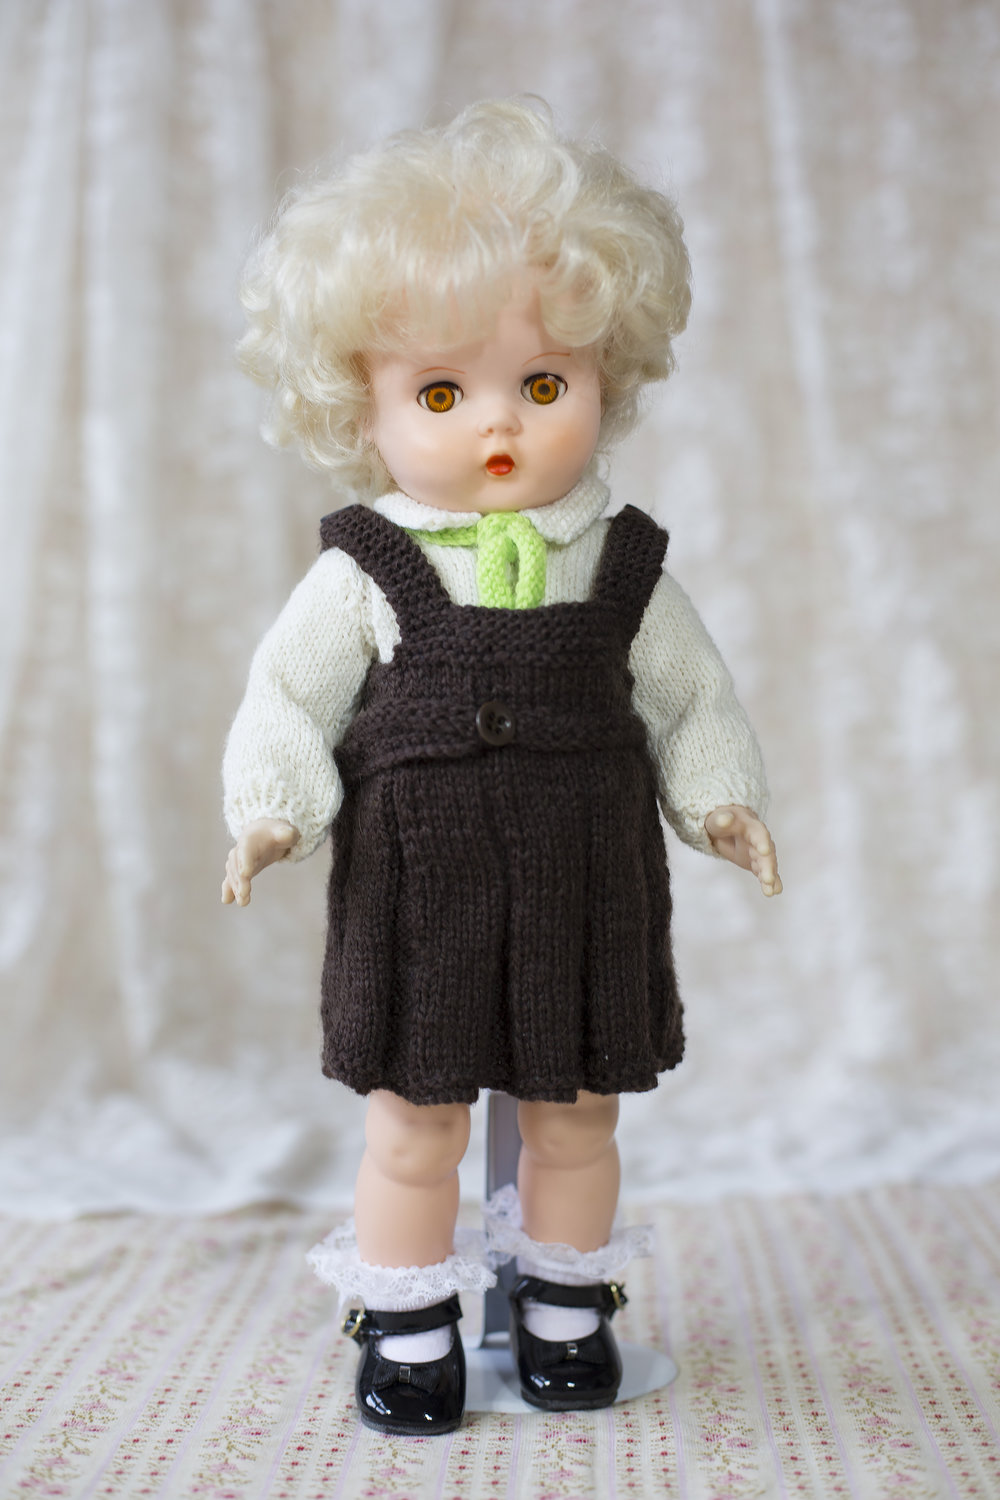 Pedigree doll wearing an Avonside Girls High uniform knitted by Judith in memory of her school days.